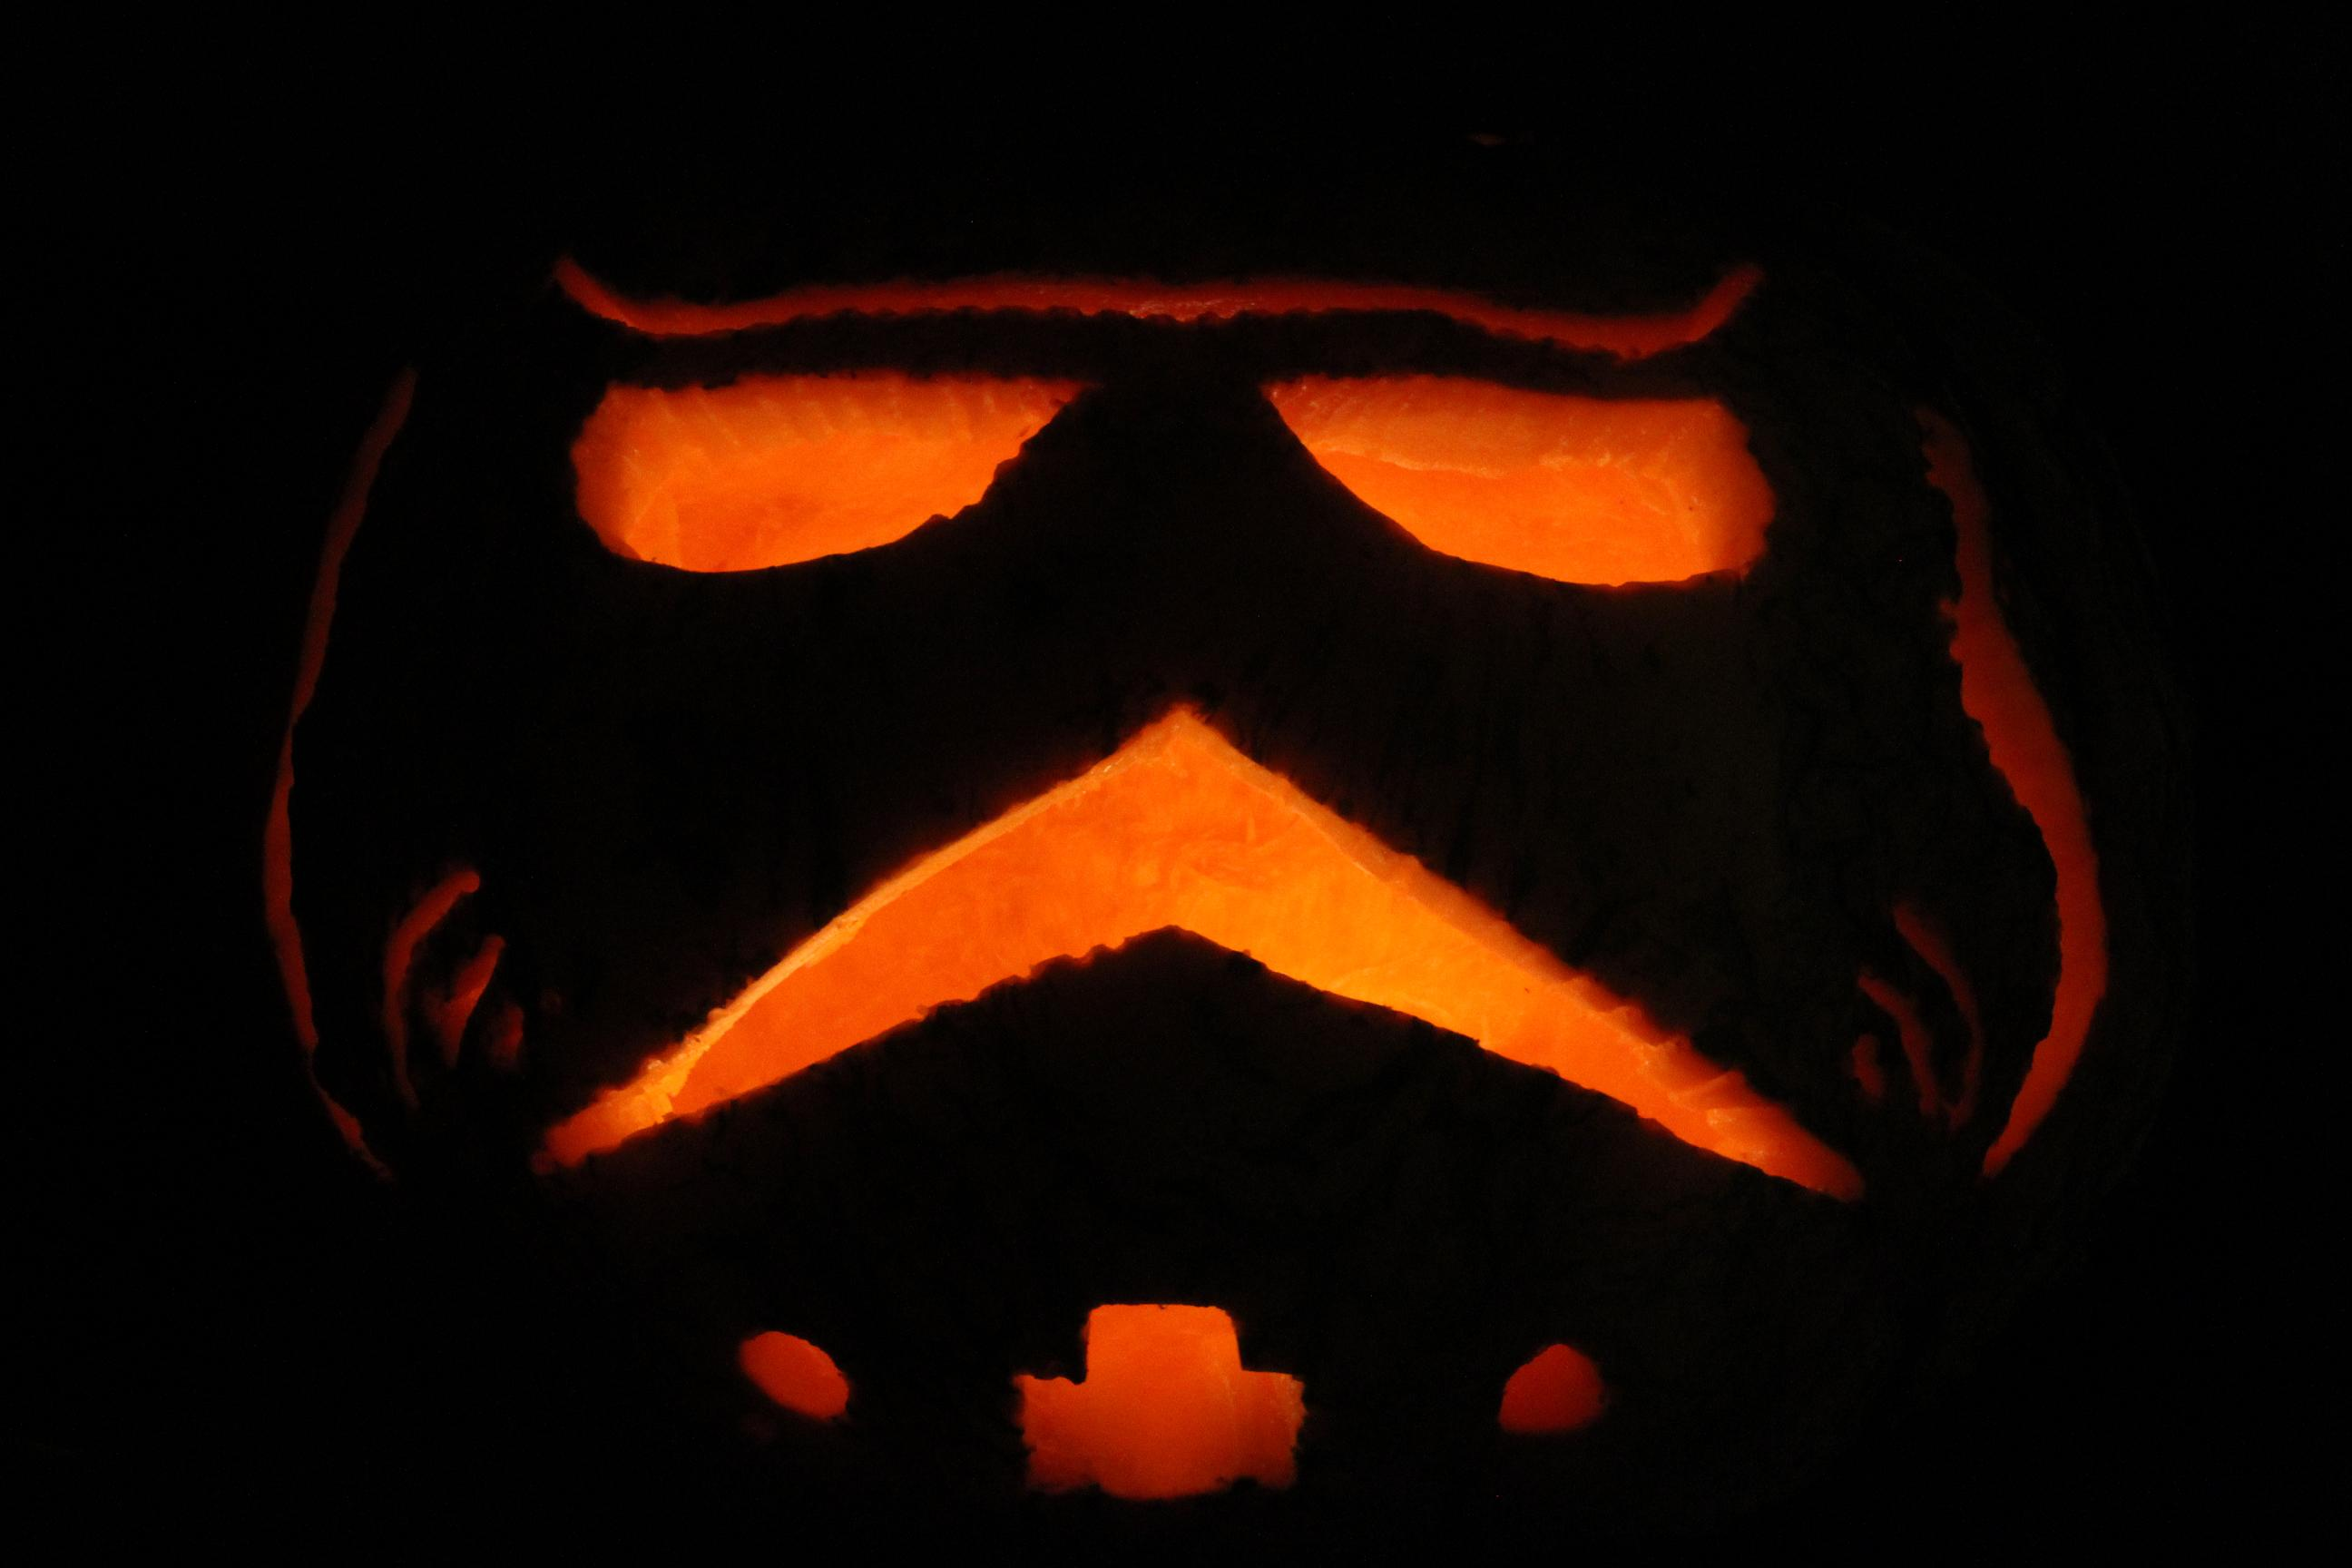 szmk_star_wars_batman_tok_pumpkin_11.JPG